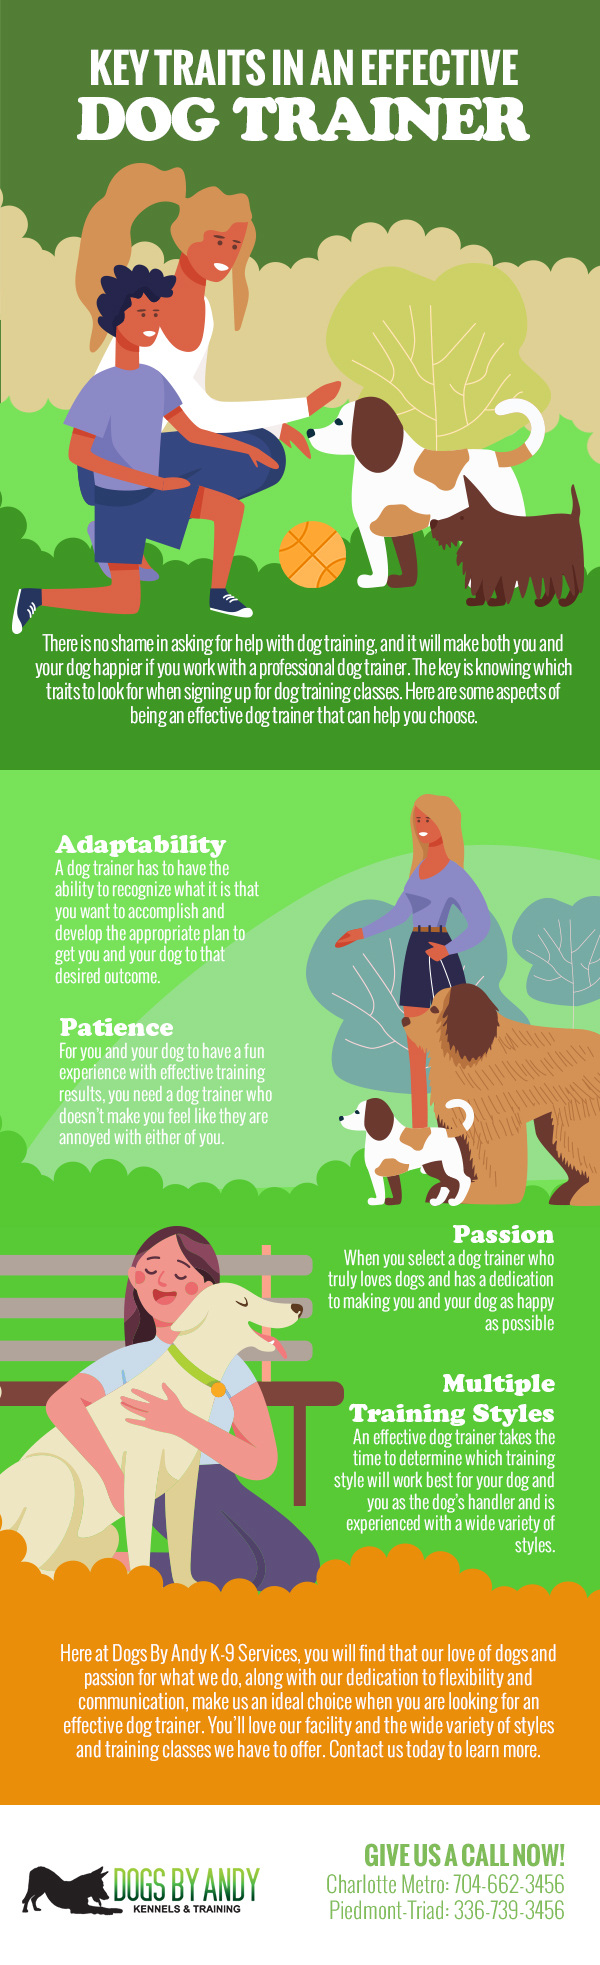 Key Traits in an Effective Dog Trainer